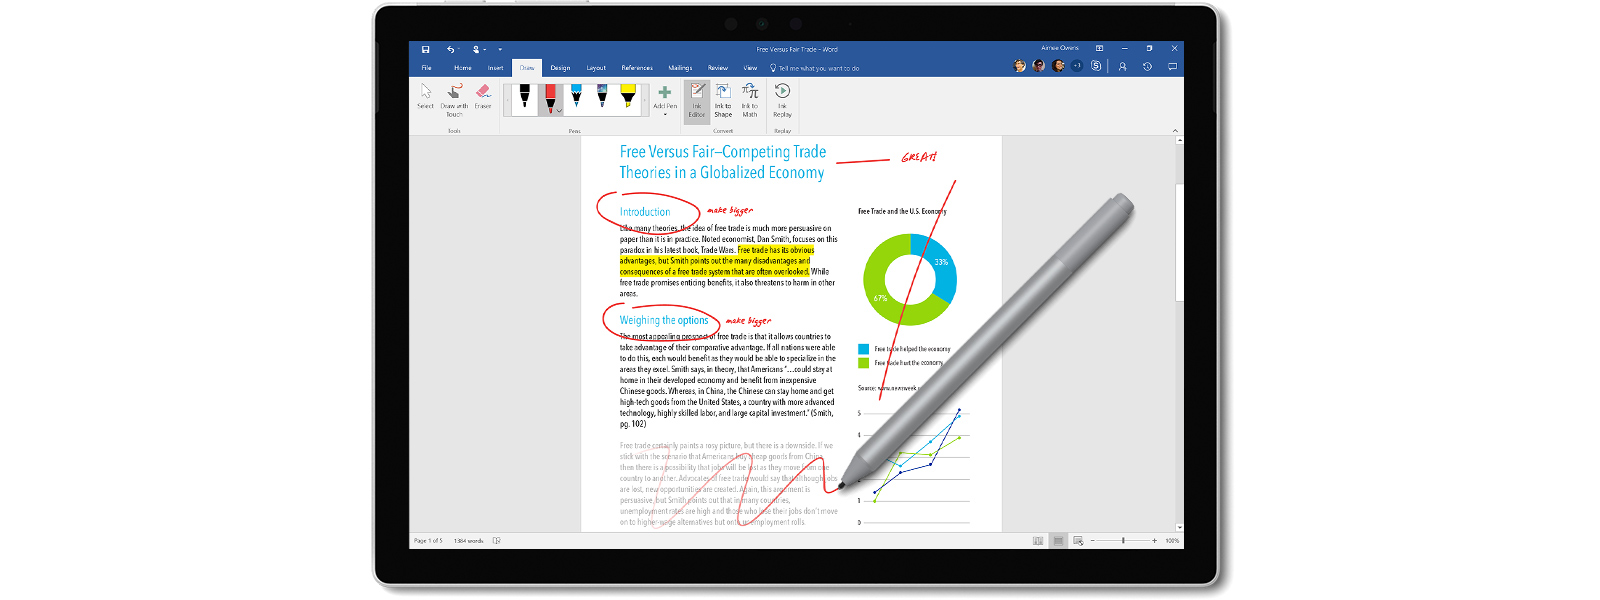 Screen shot of Surface Pen editing a page, with comments, highlight, strikethrough, and selected text circled.